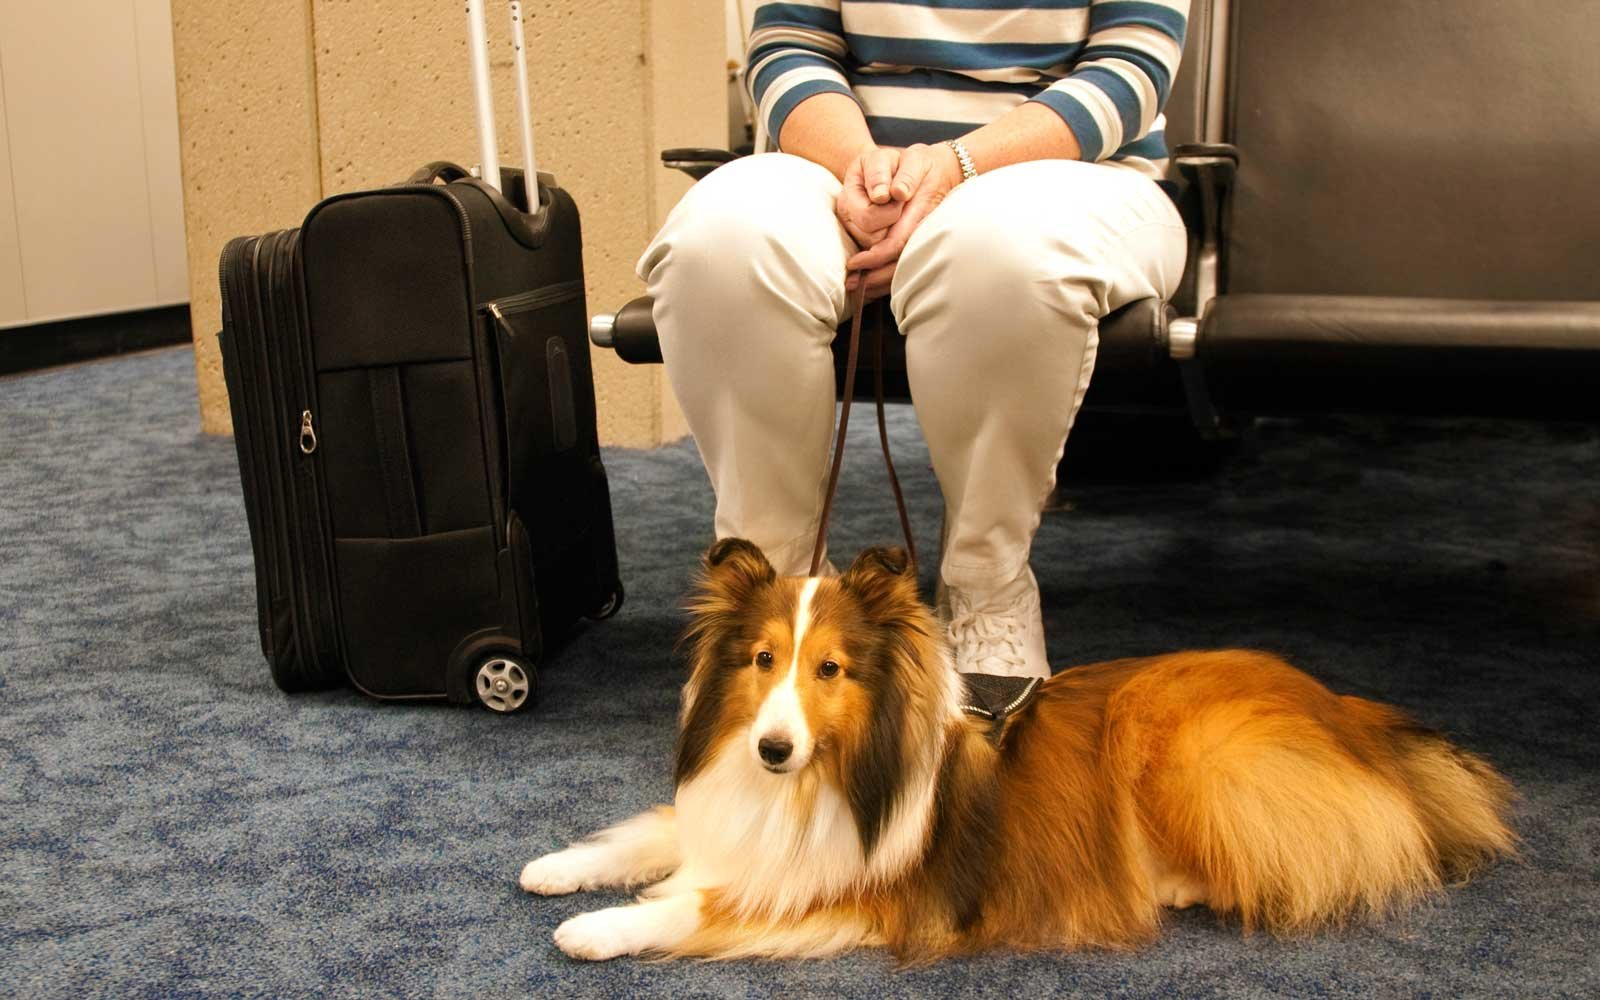 Delta's Cracking Down on 'Emotional Support Animals' On Board Flights